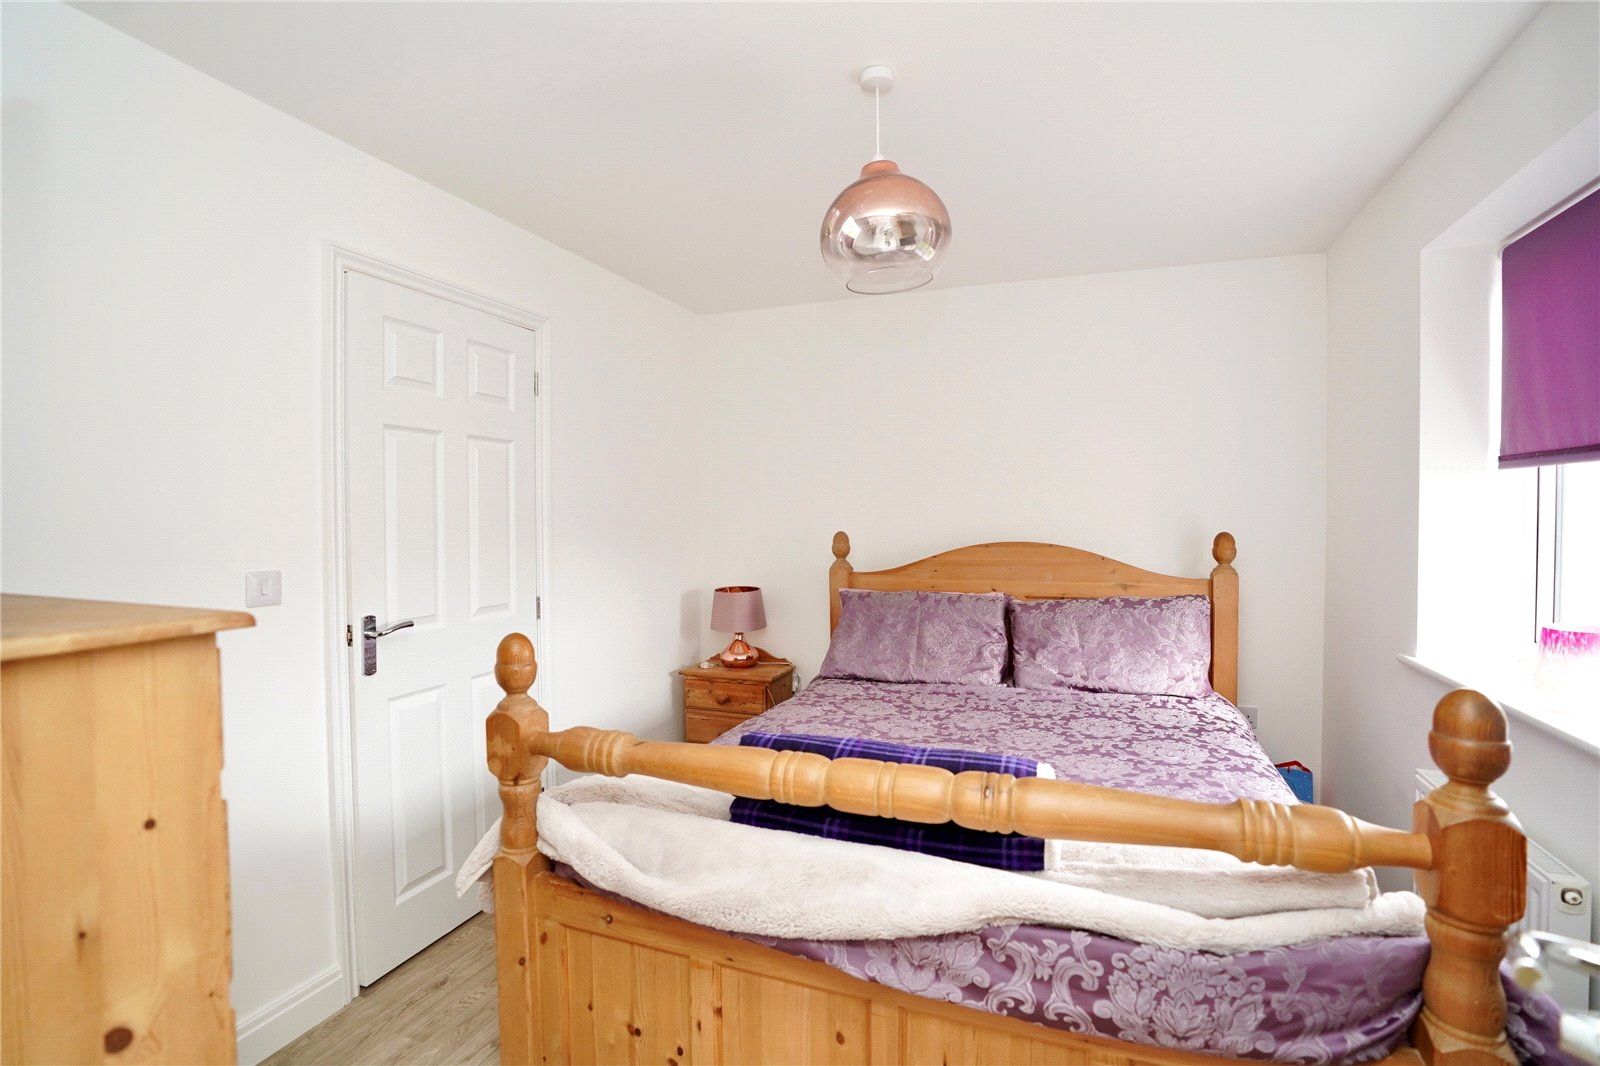 3 bed house for sale in Sawtry, PE28 5ZJ  - Property Image 7